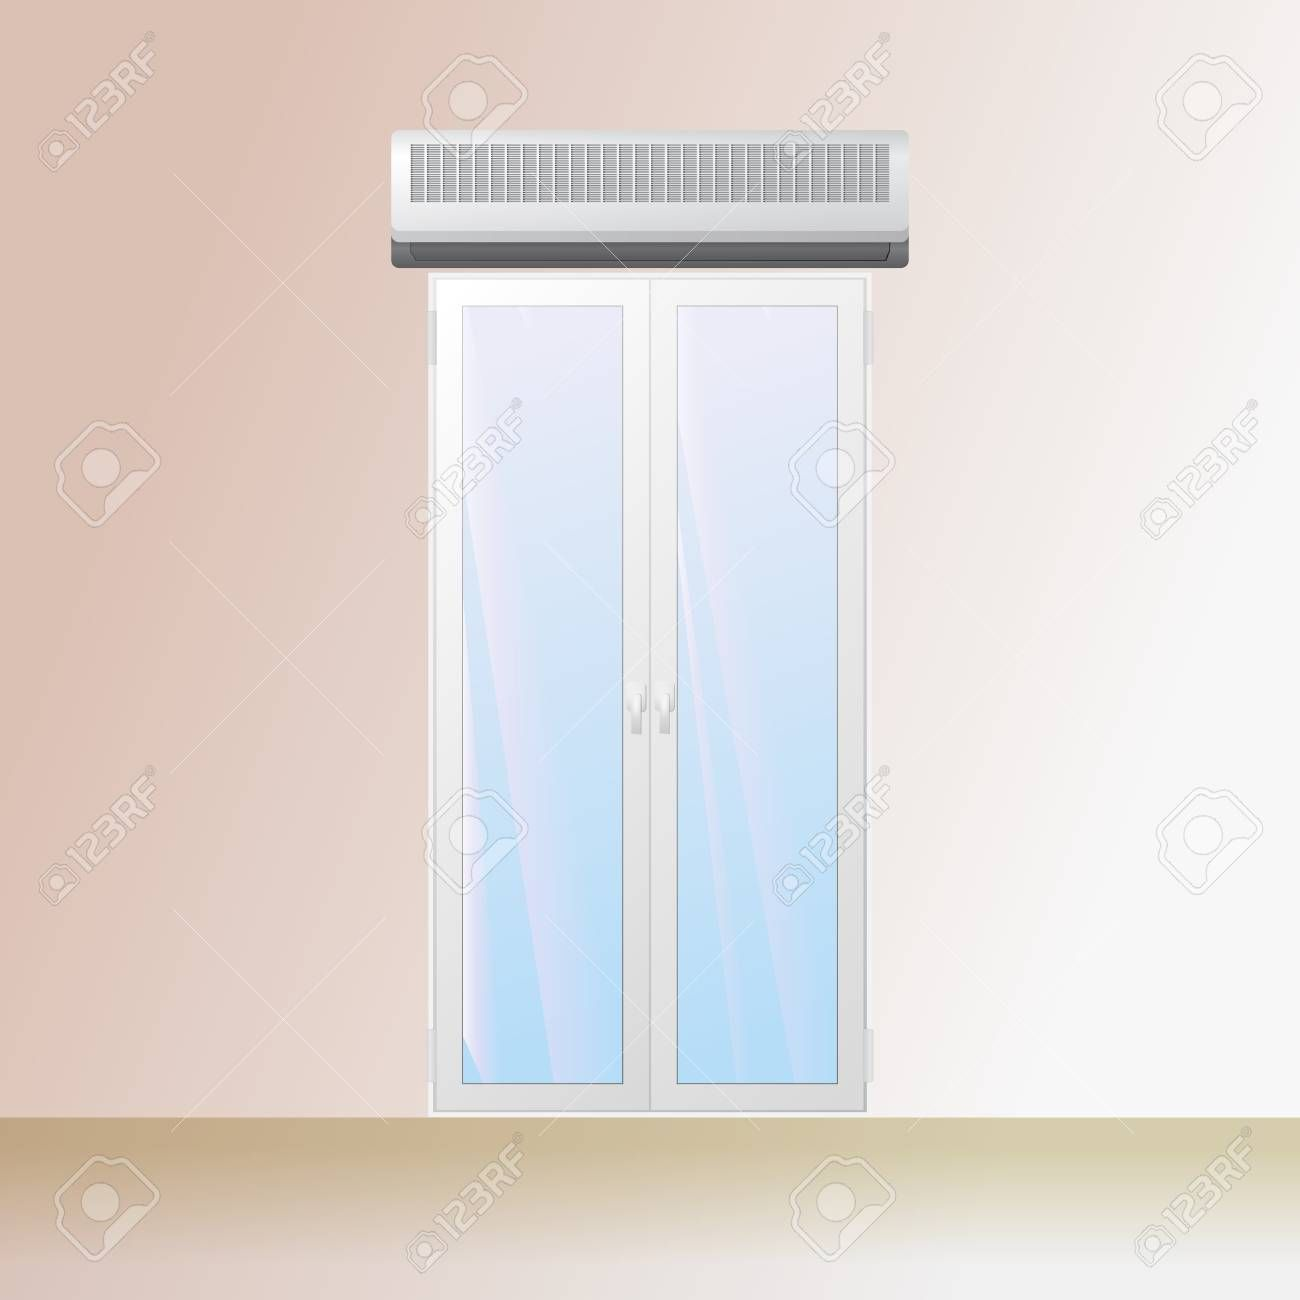 Air Curtain Over A Doorway In The Store Electric Blower Vector